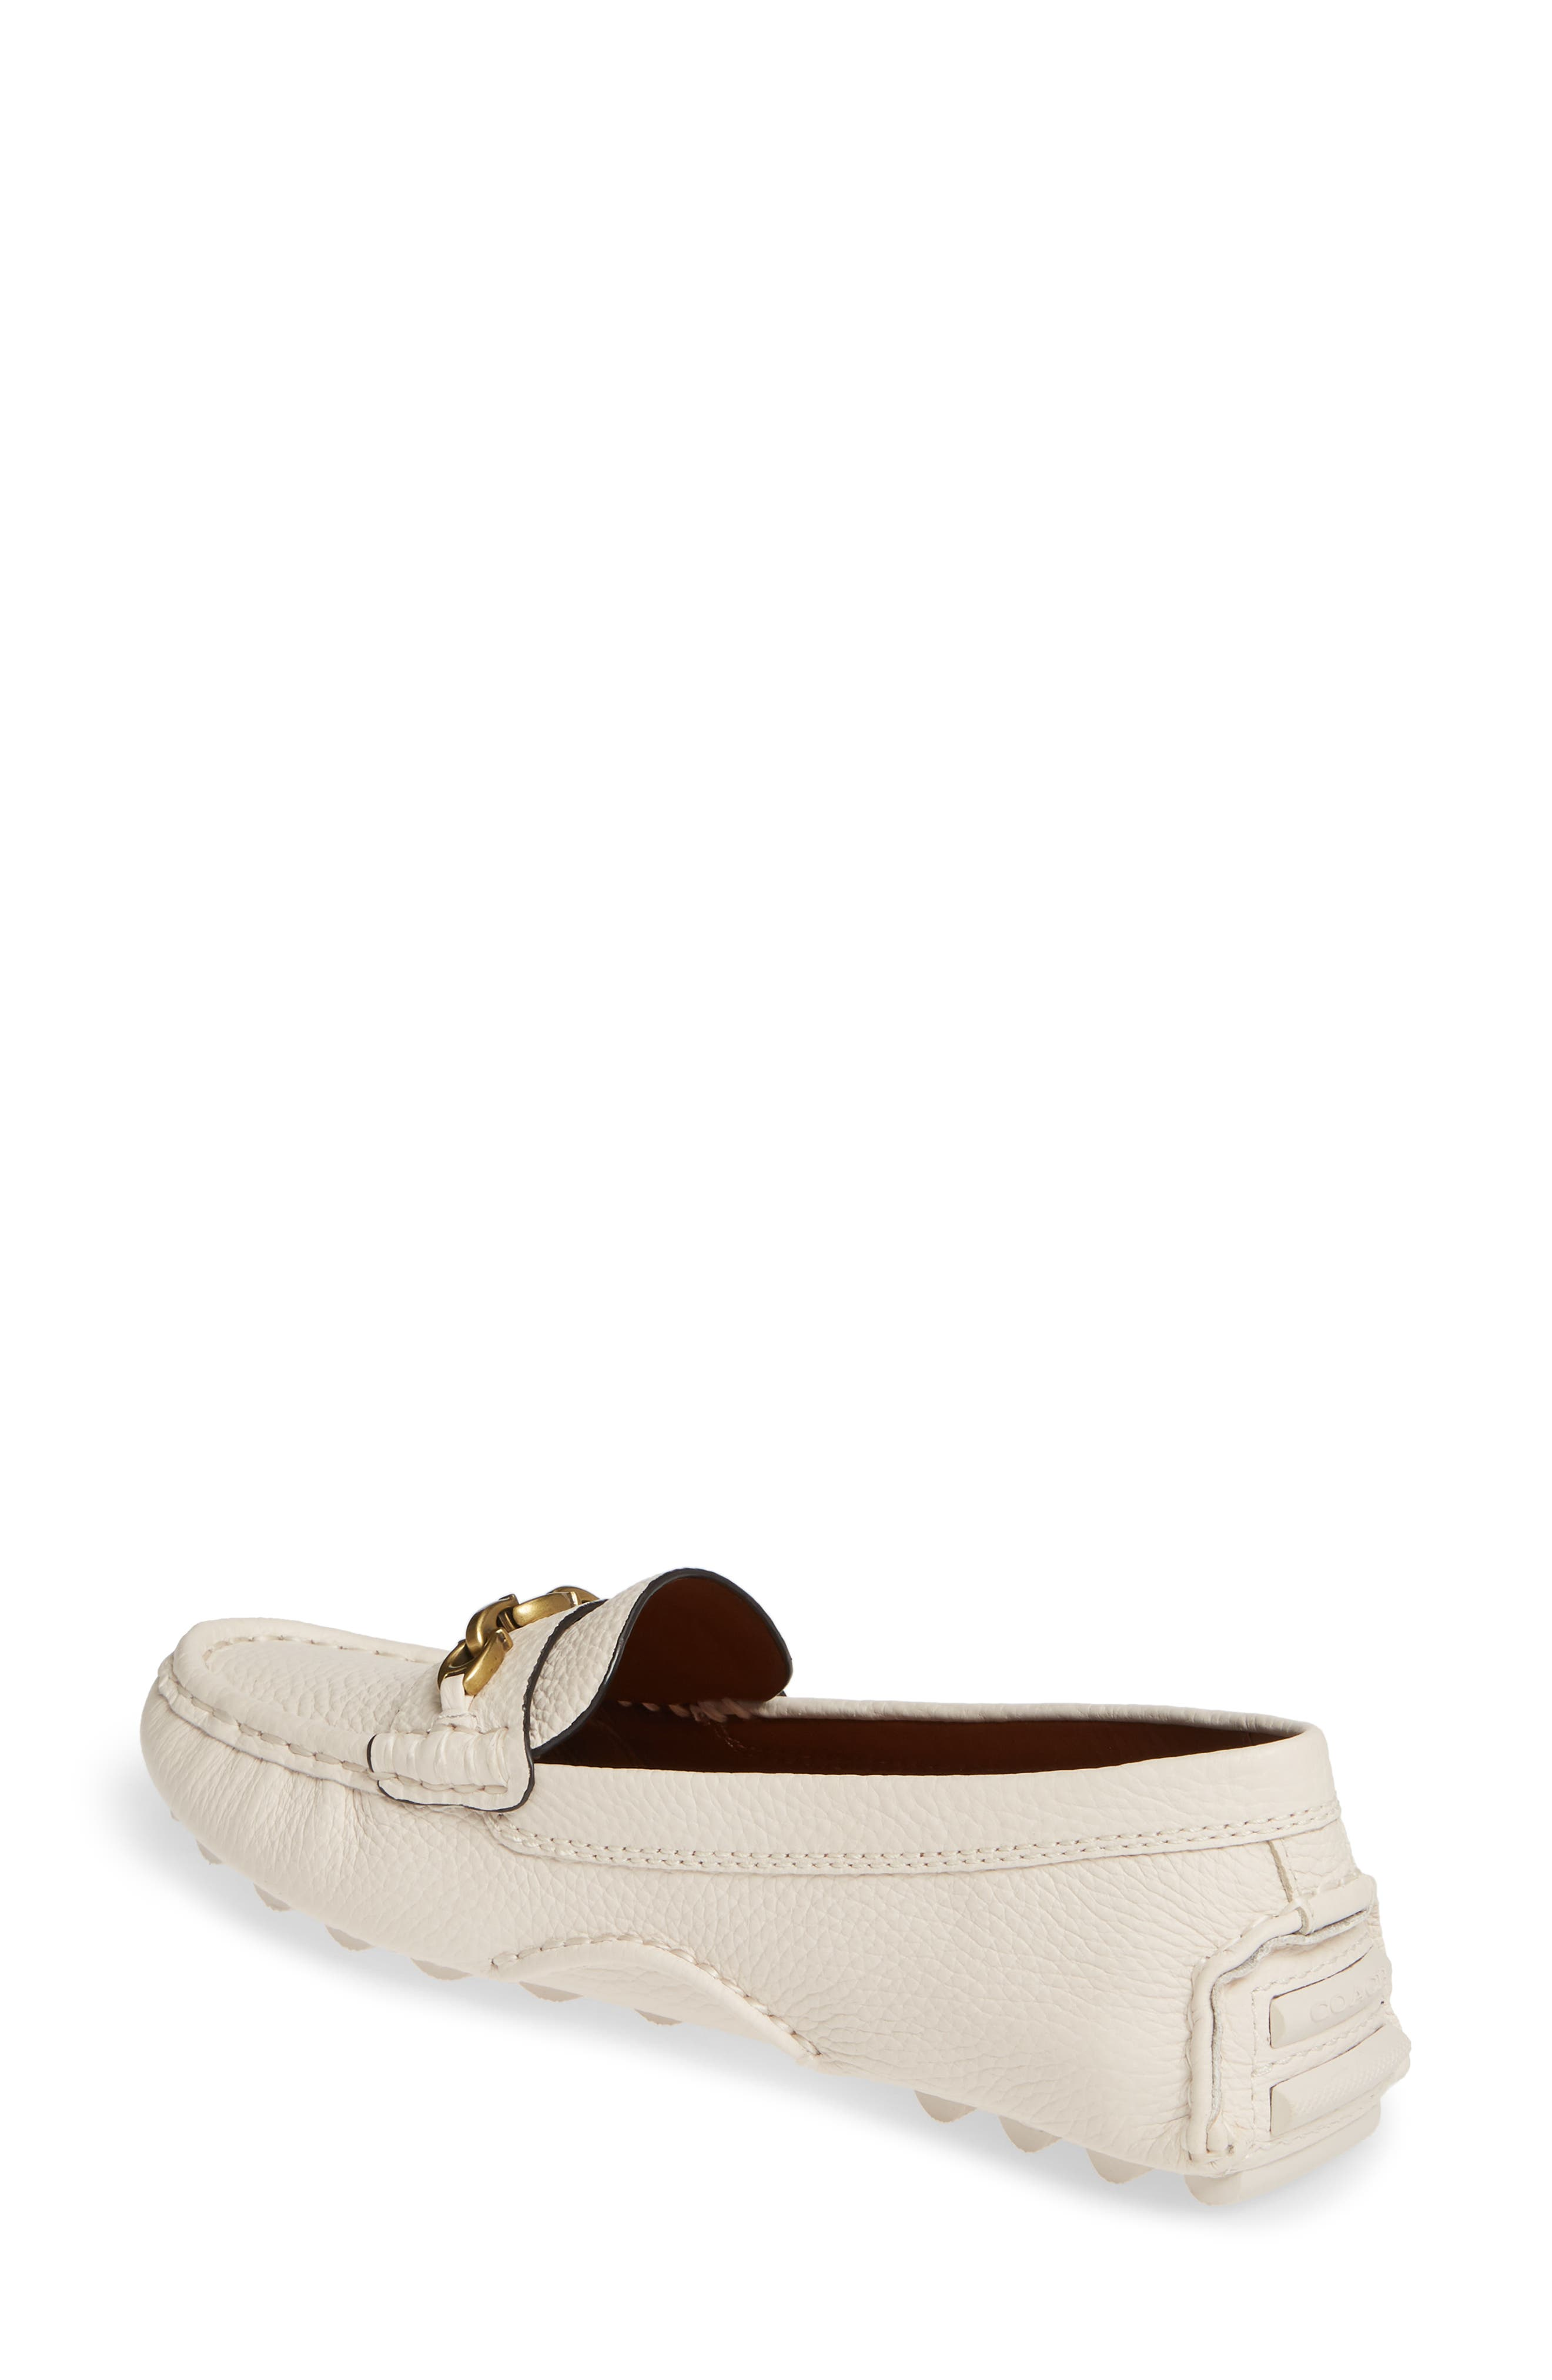 COACH, Crosby Driver Loafer, Alternate thumbnail 2, color, CHALK LEATHER